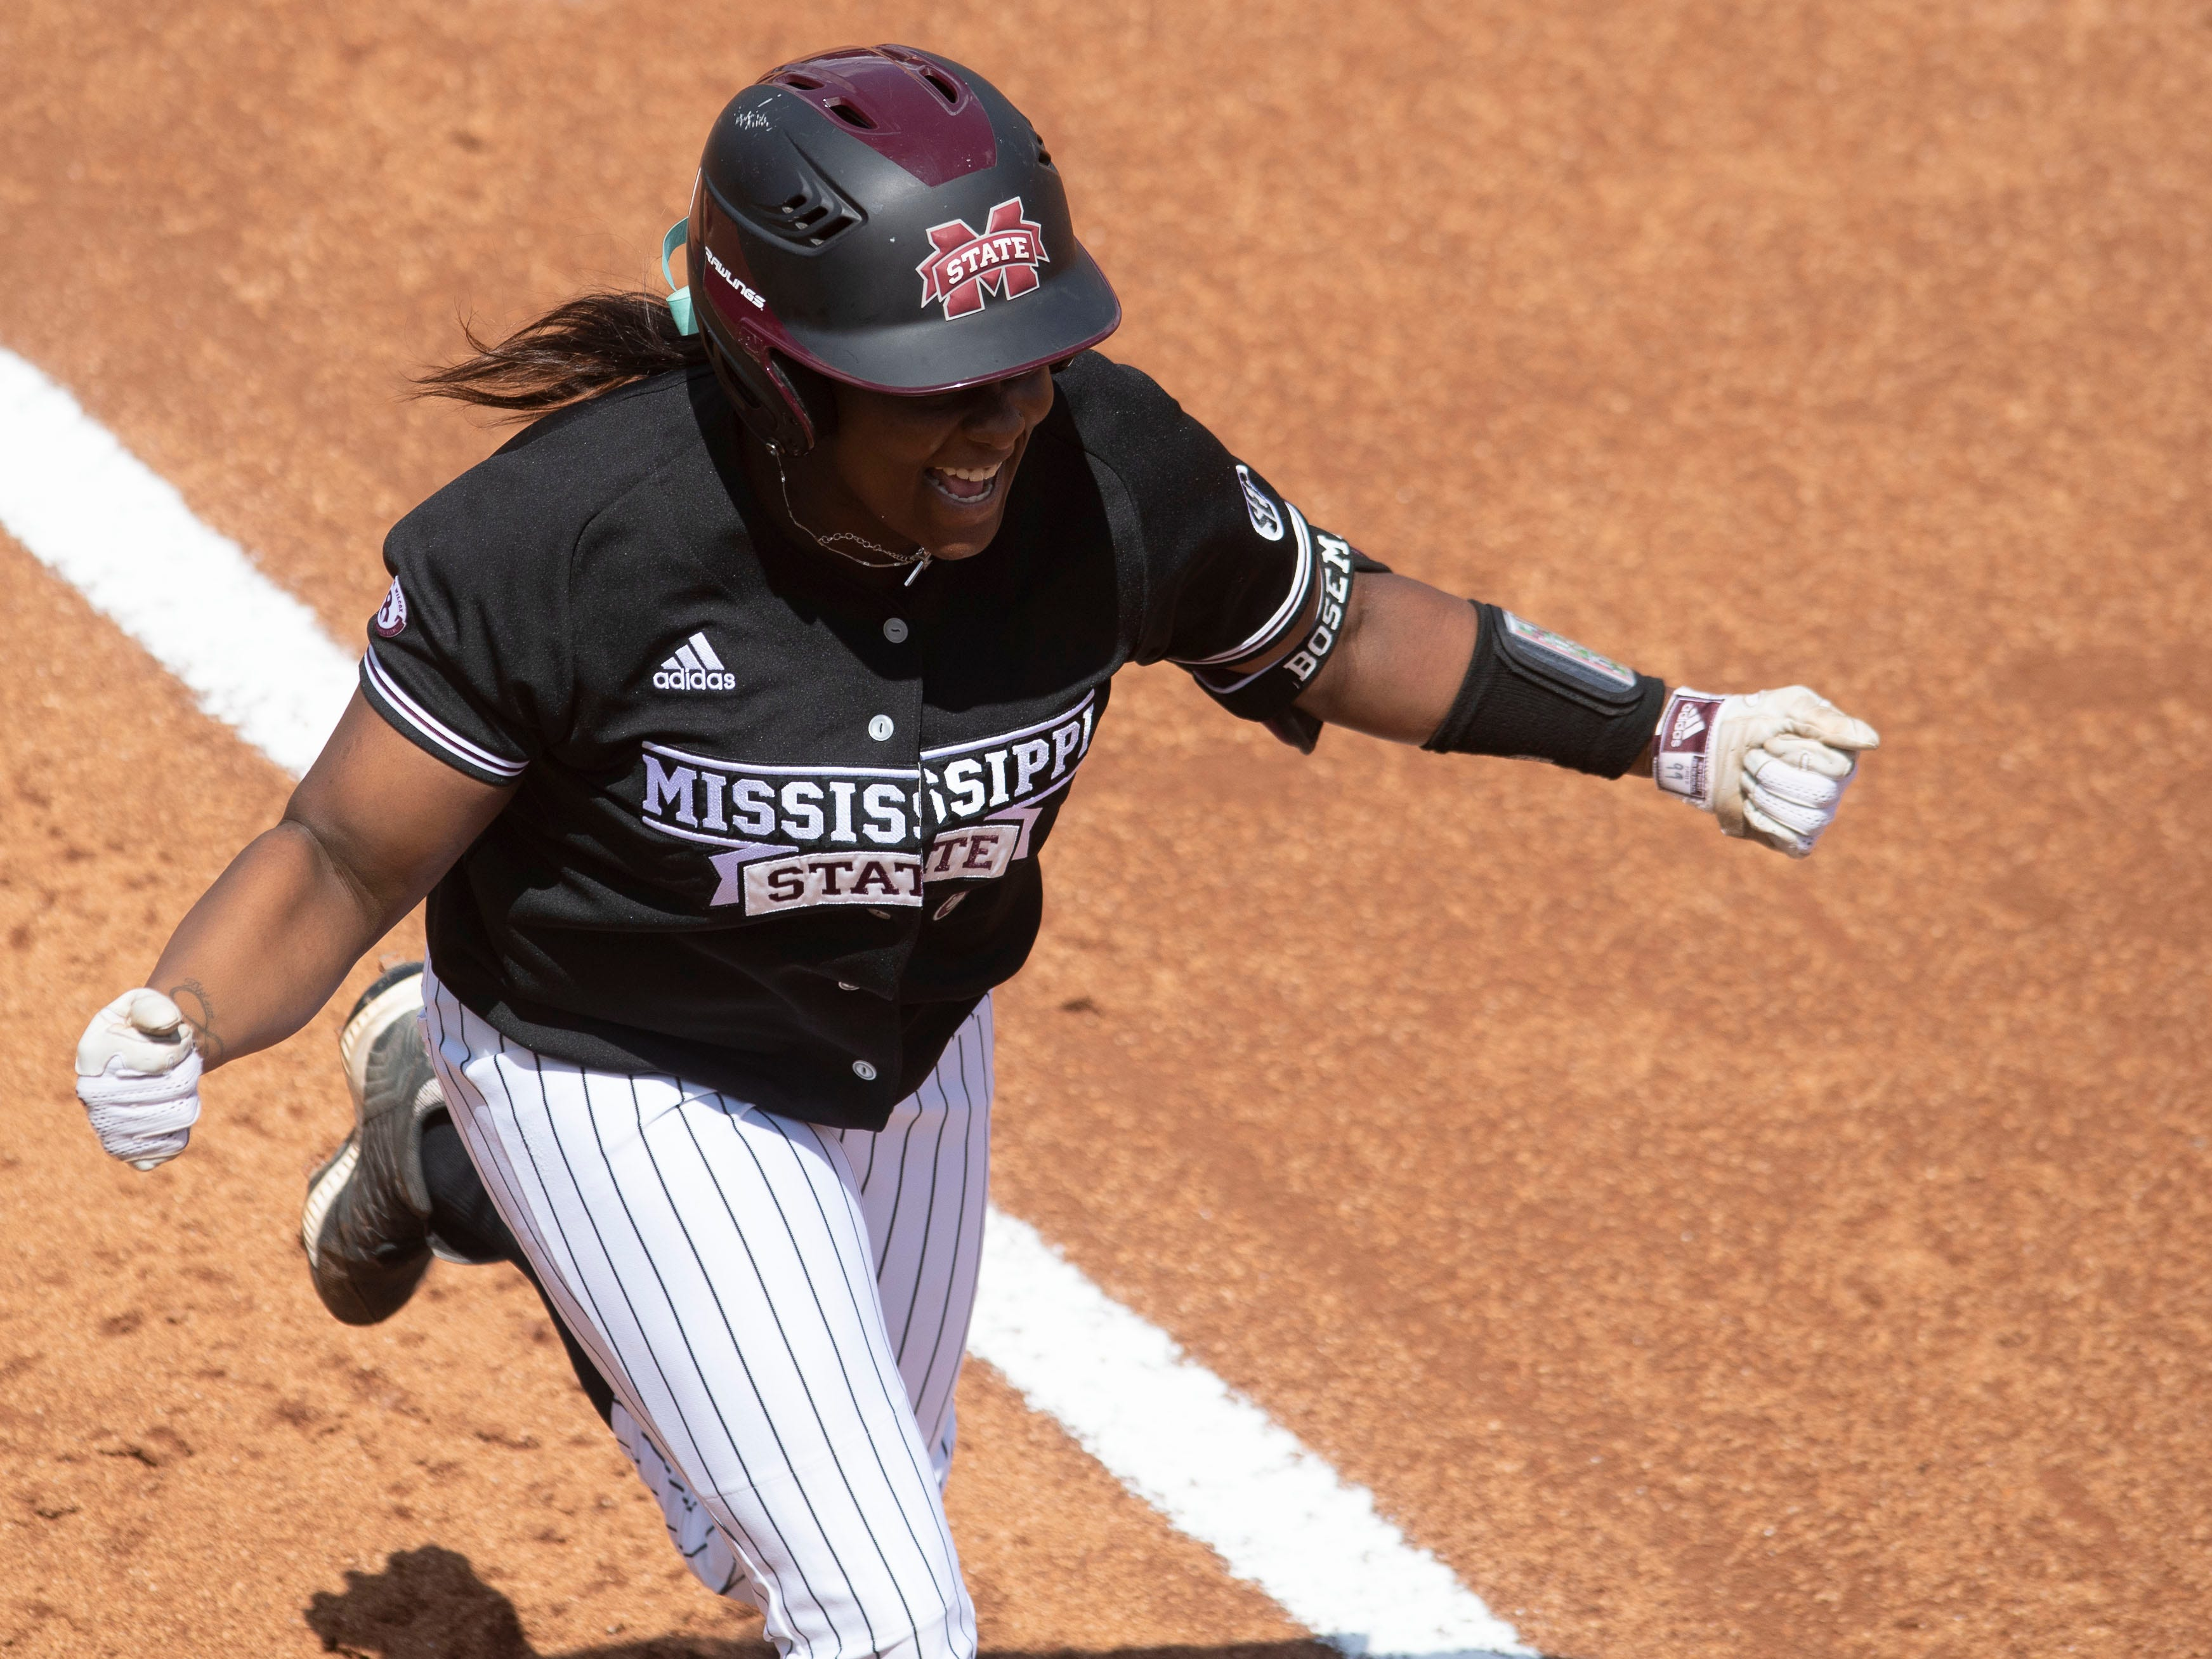 Mississippi State's Kayla Boseman (99) rounds the bases on a home run hit in the third game of the series against Tennessee at Sherri Parker Lee Stadium on Sunday, April 14, 2019.